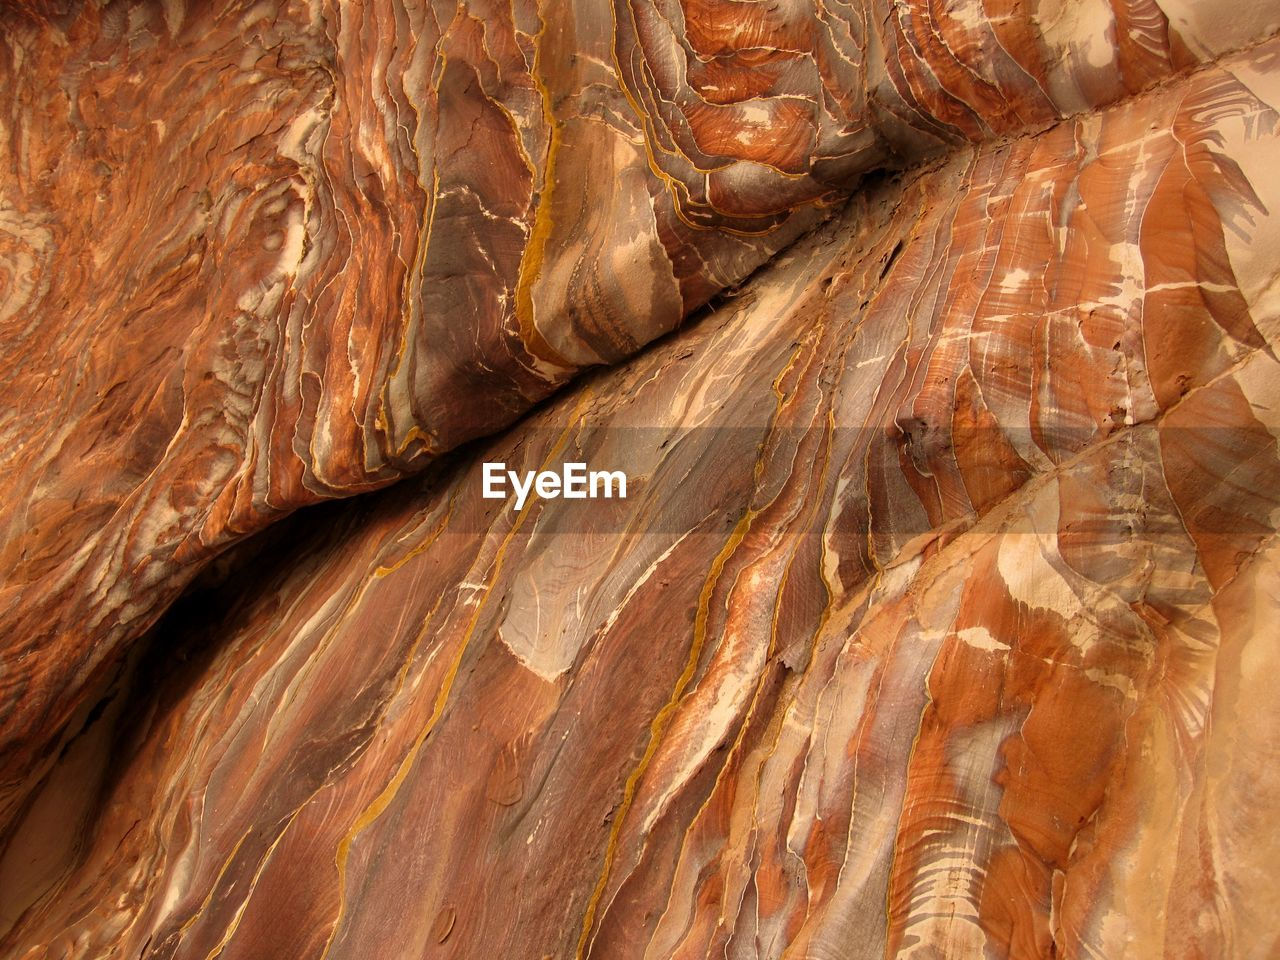 rock, full frame, rock - object, solid, no people, close-up, backgrounds, textured, pattern, nature, geology, outdoors, natural pattern, marbled effect, non-urban scene, day, abstract, beauty in nature, rock formation, sandstone, eroded, quartz